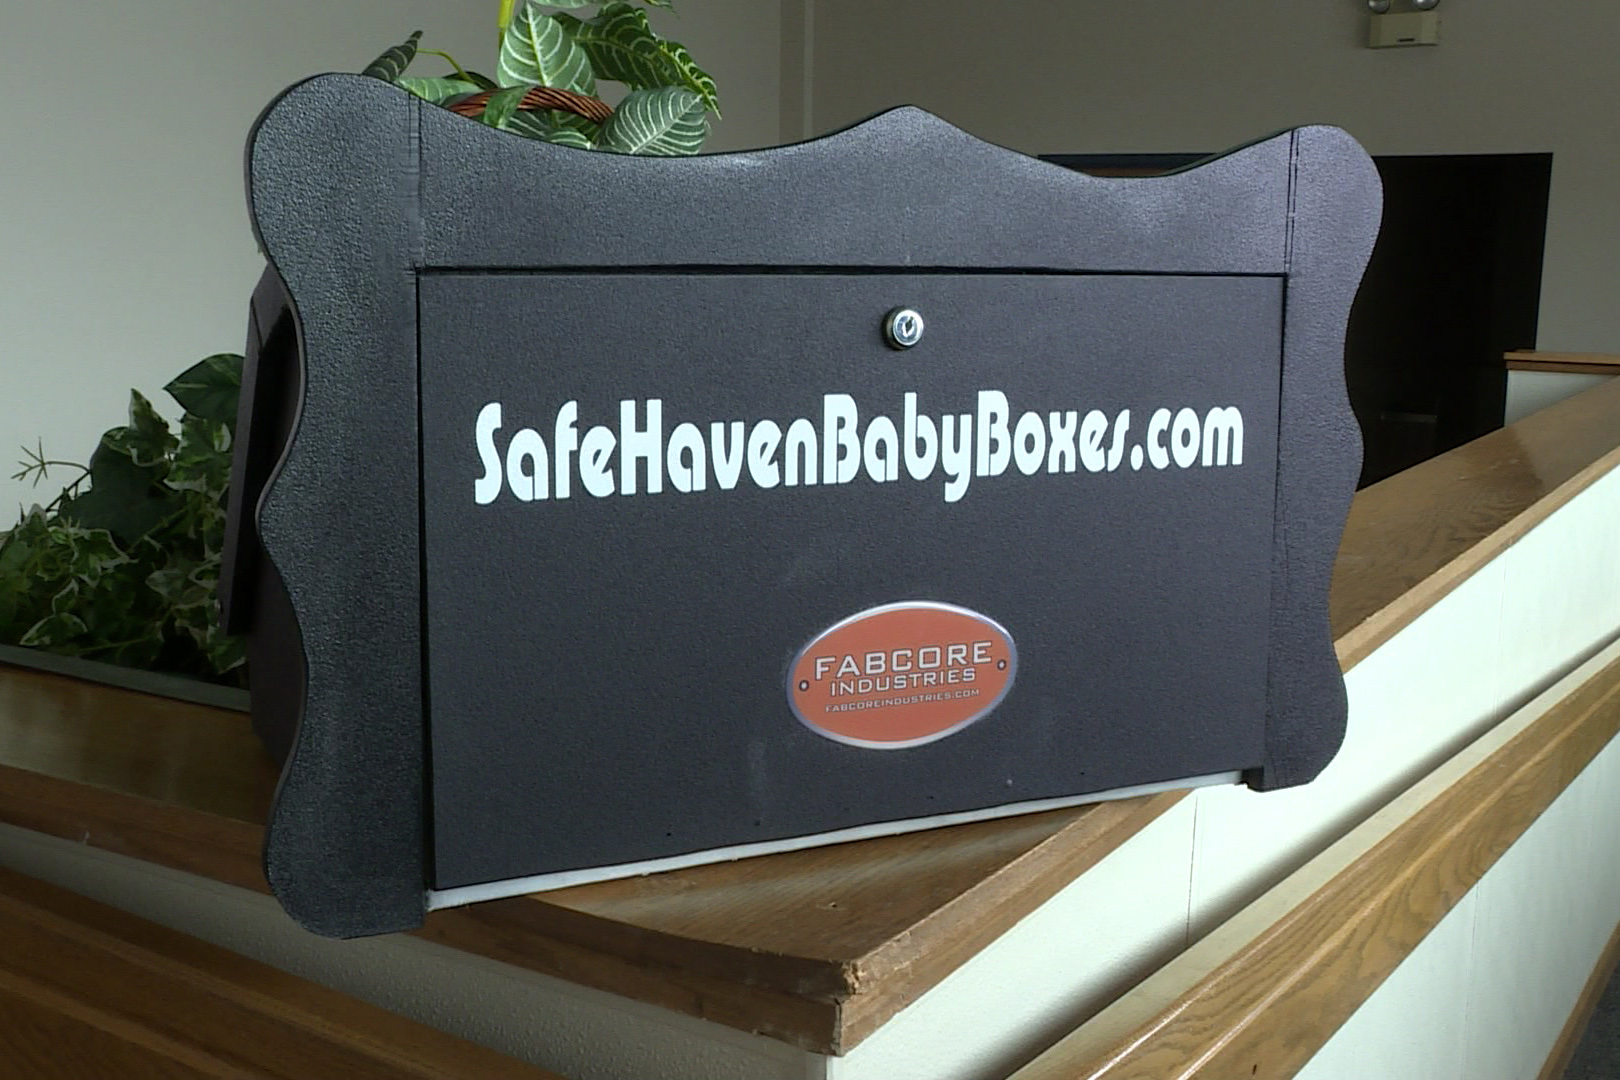 A baby box device.